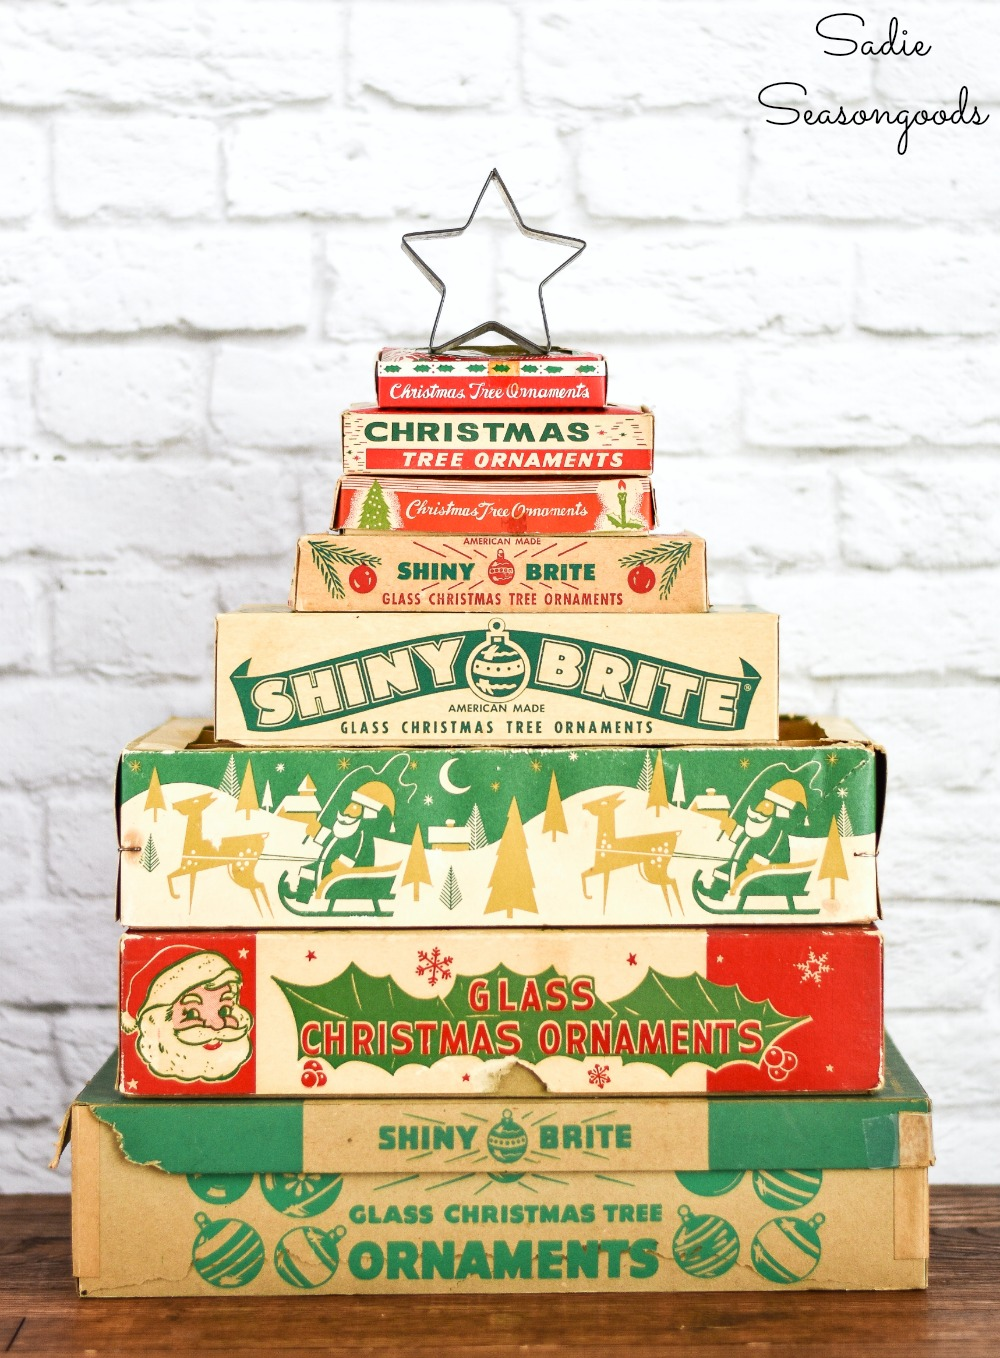 Upcycling ideas for Christmas home decor and vintage Christmas decorations such as ornament boxes as a Christmas tree